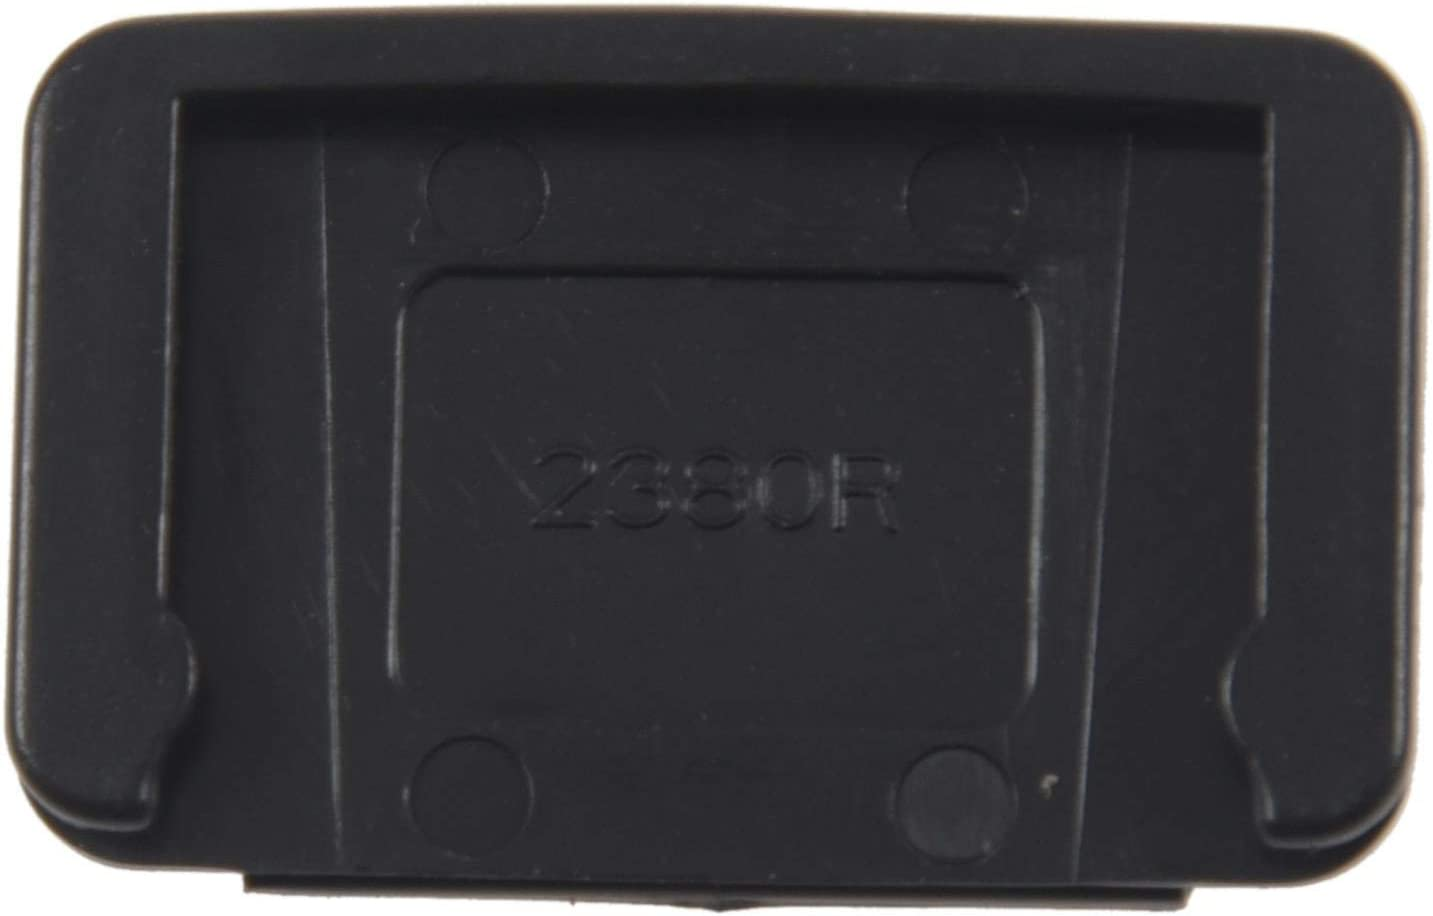 SODIAL FOR Nikon DK-5 Replacement Viewfinder Cover